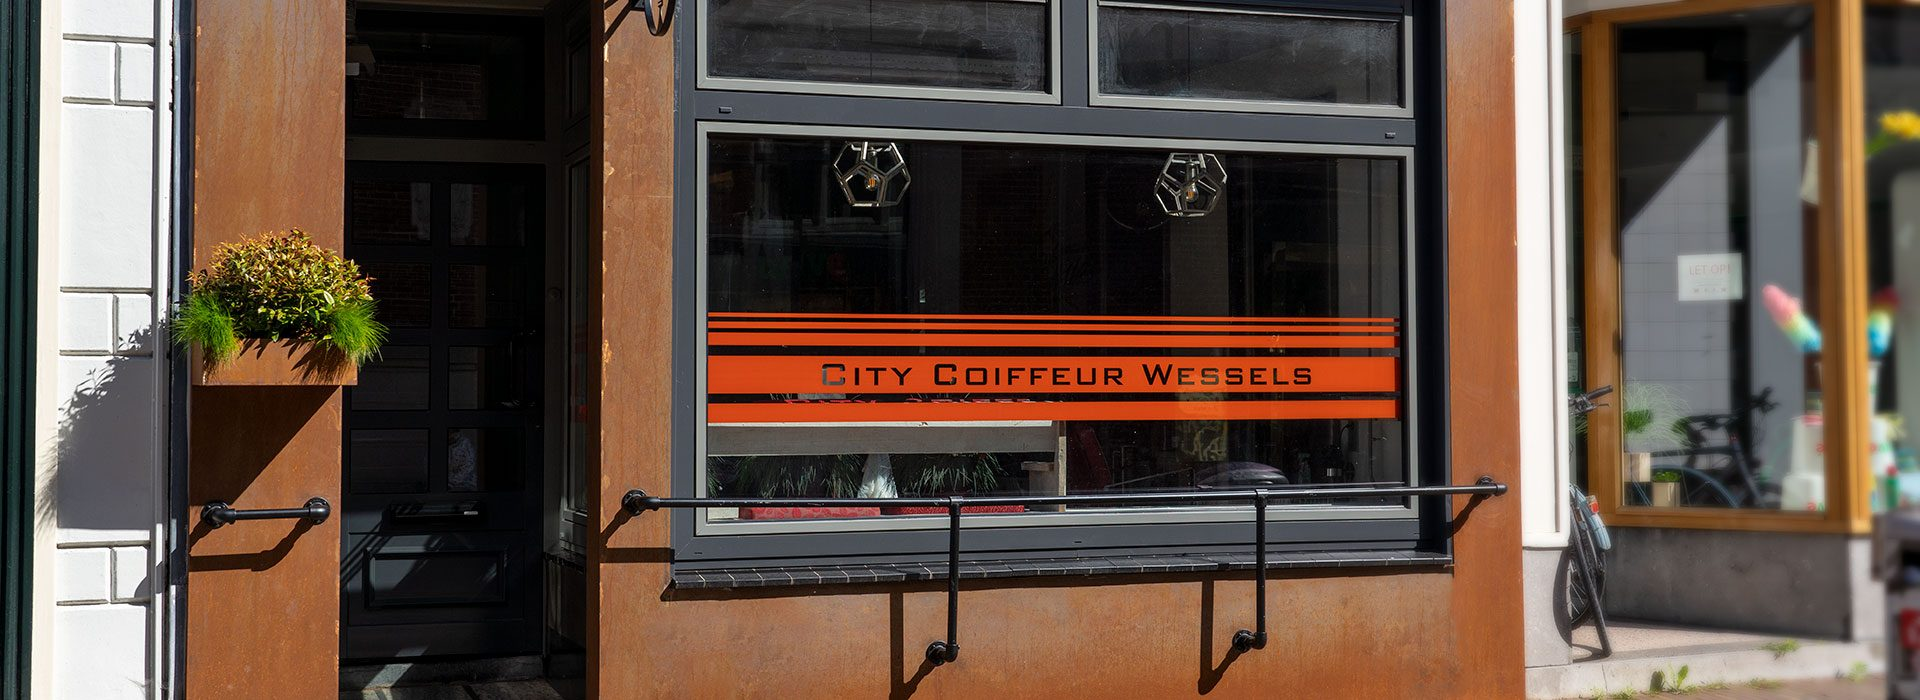 City Coiffeur Wessels